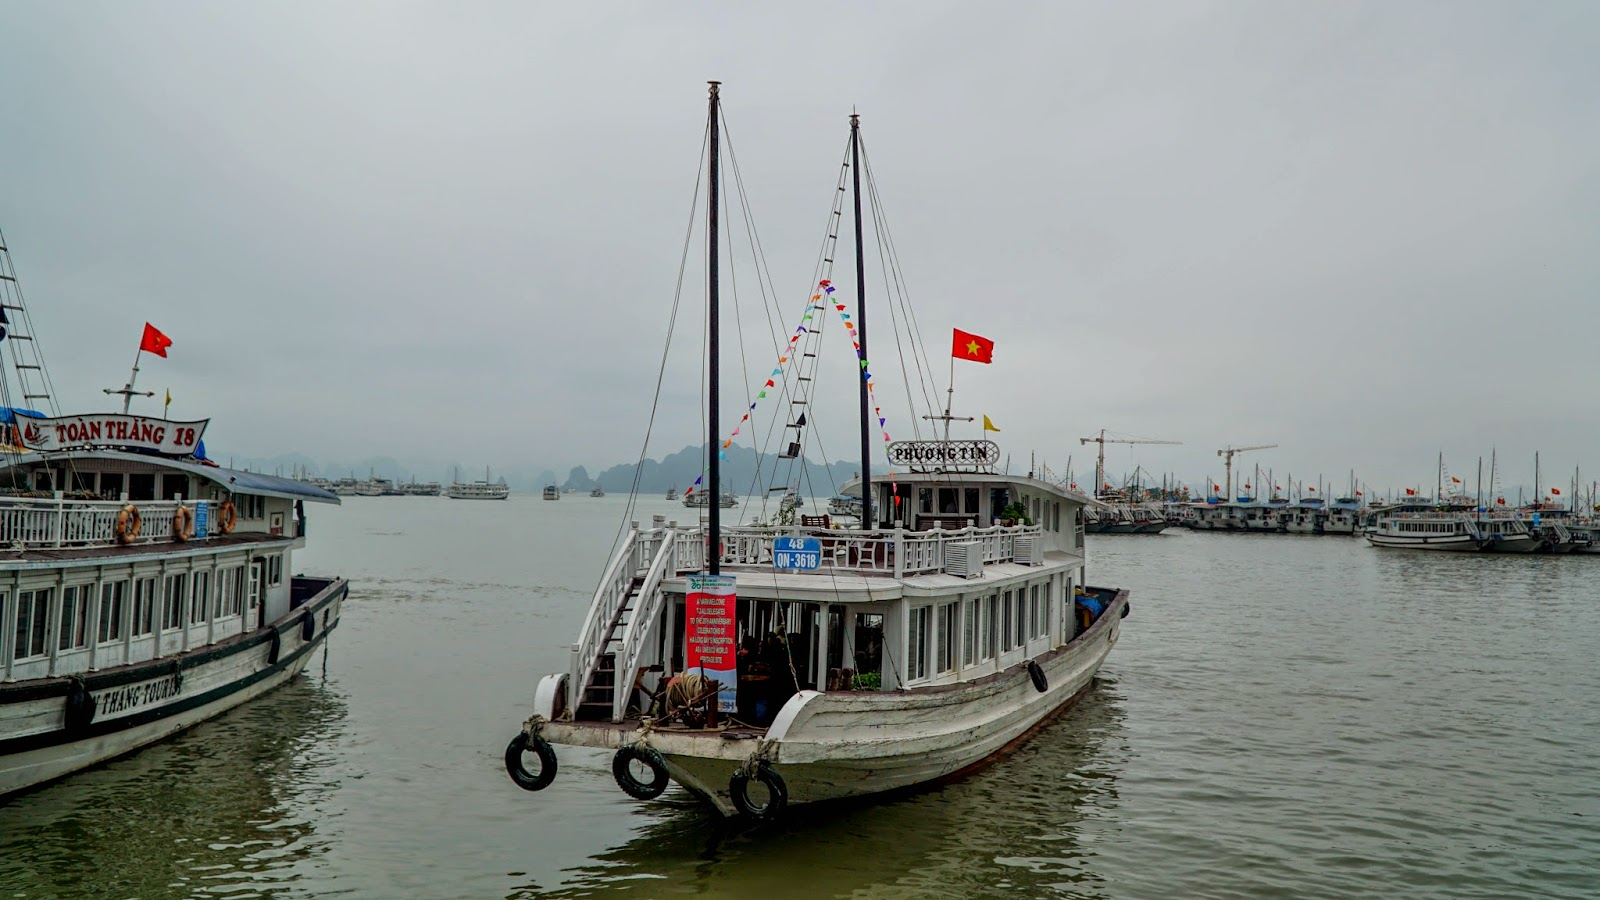 A junk departing the wharf for Halong Bay